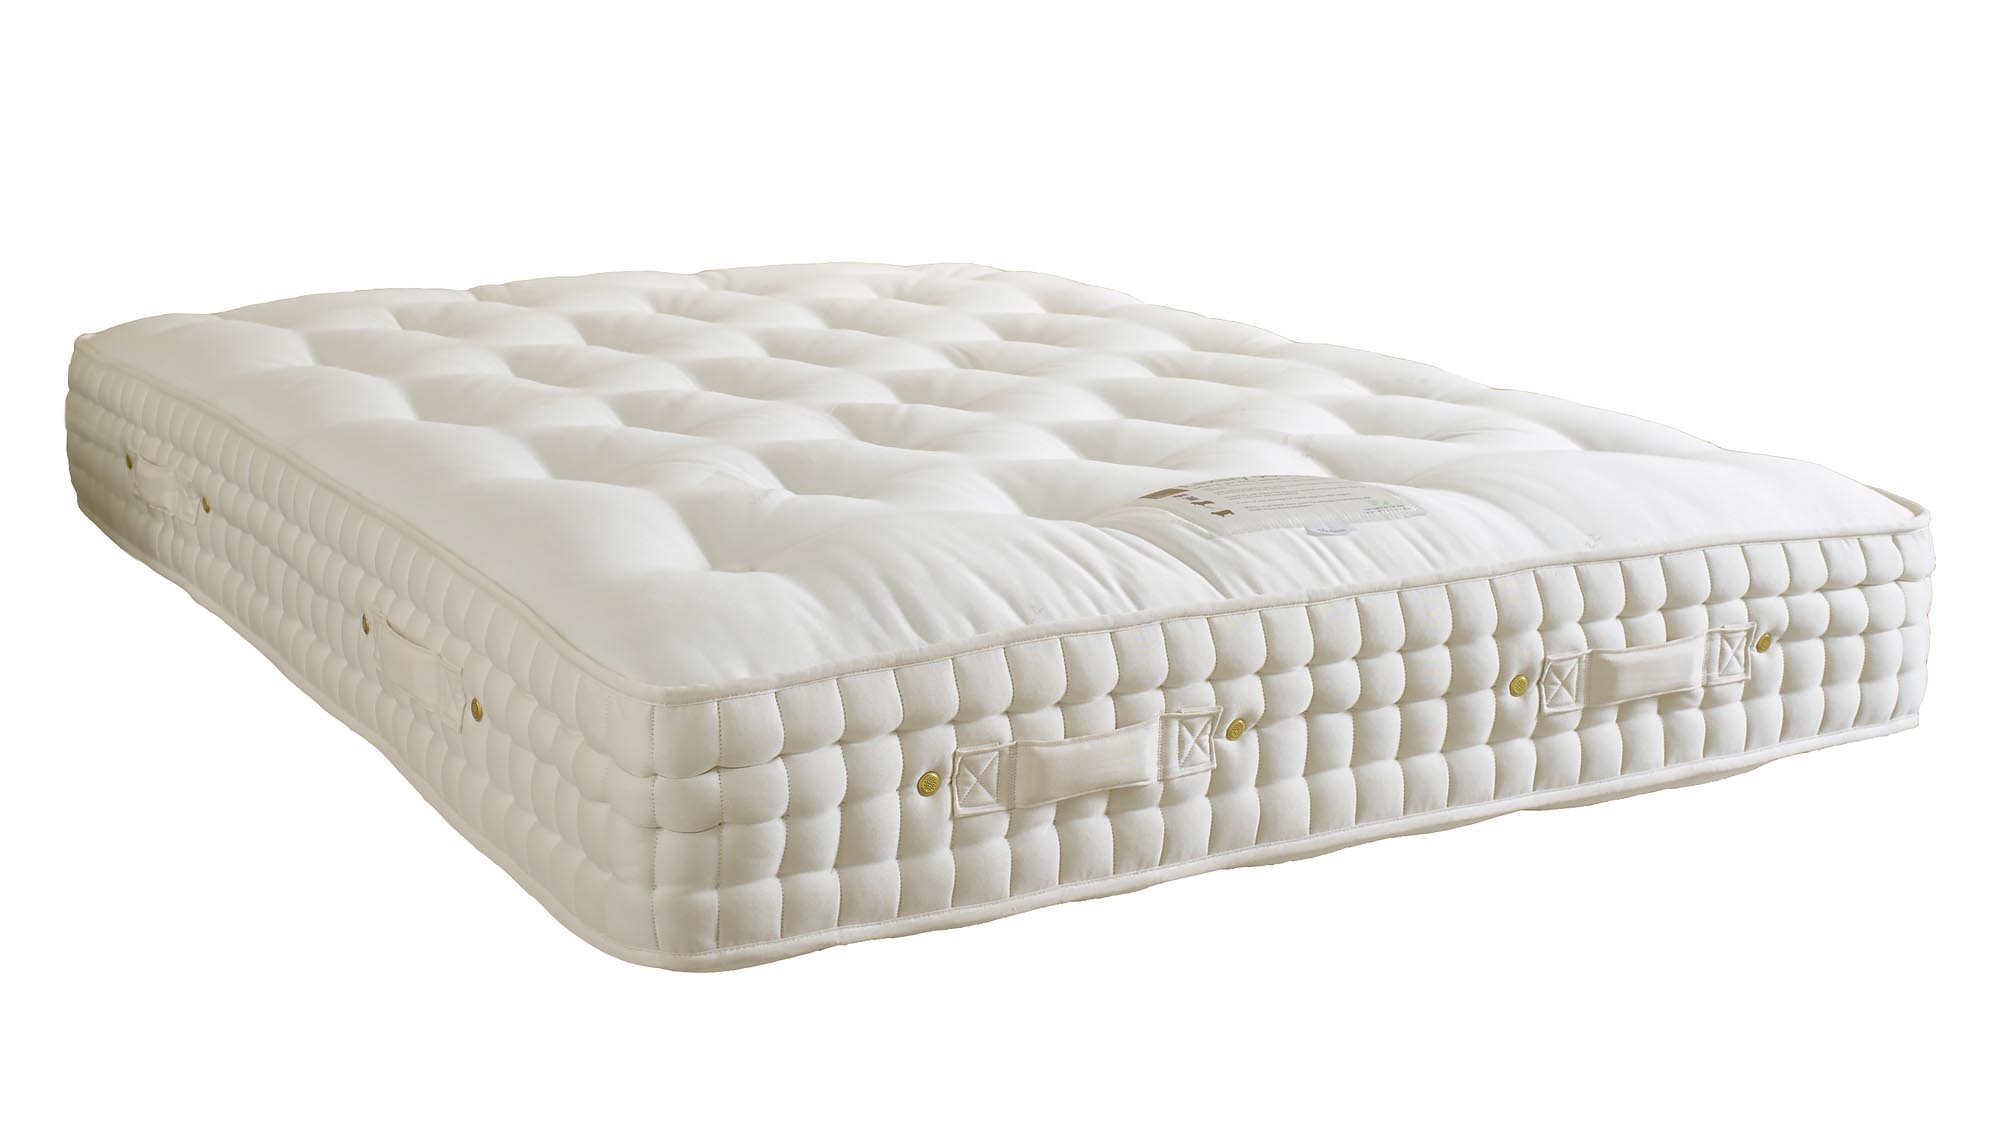 Best Mattresses For A Bad Back Banish Back Pain With The Right Mattress Expert Reviews